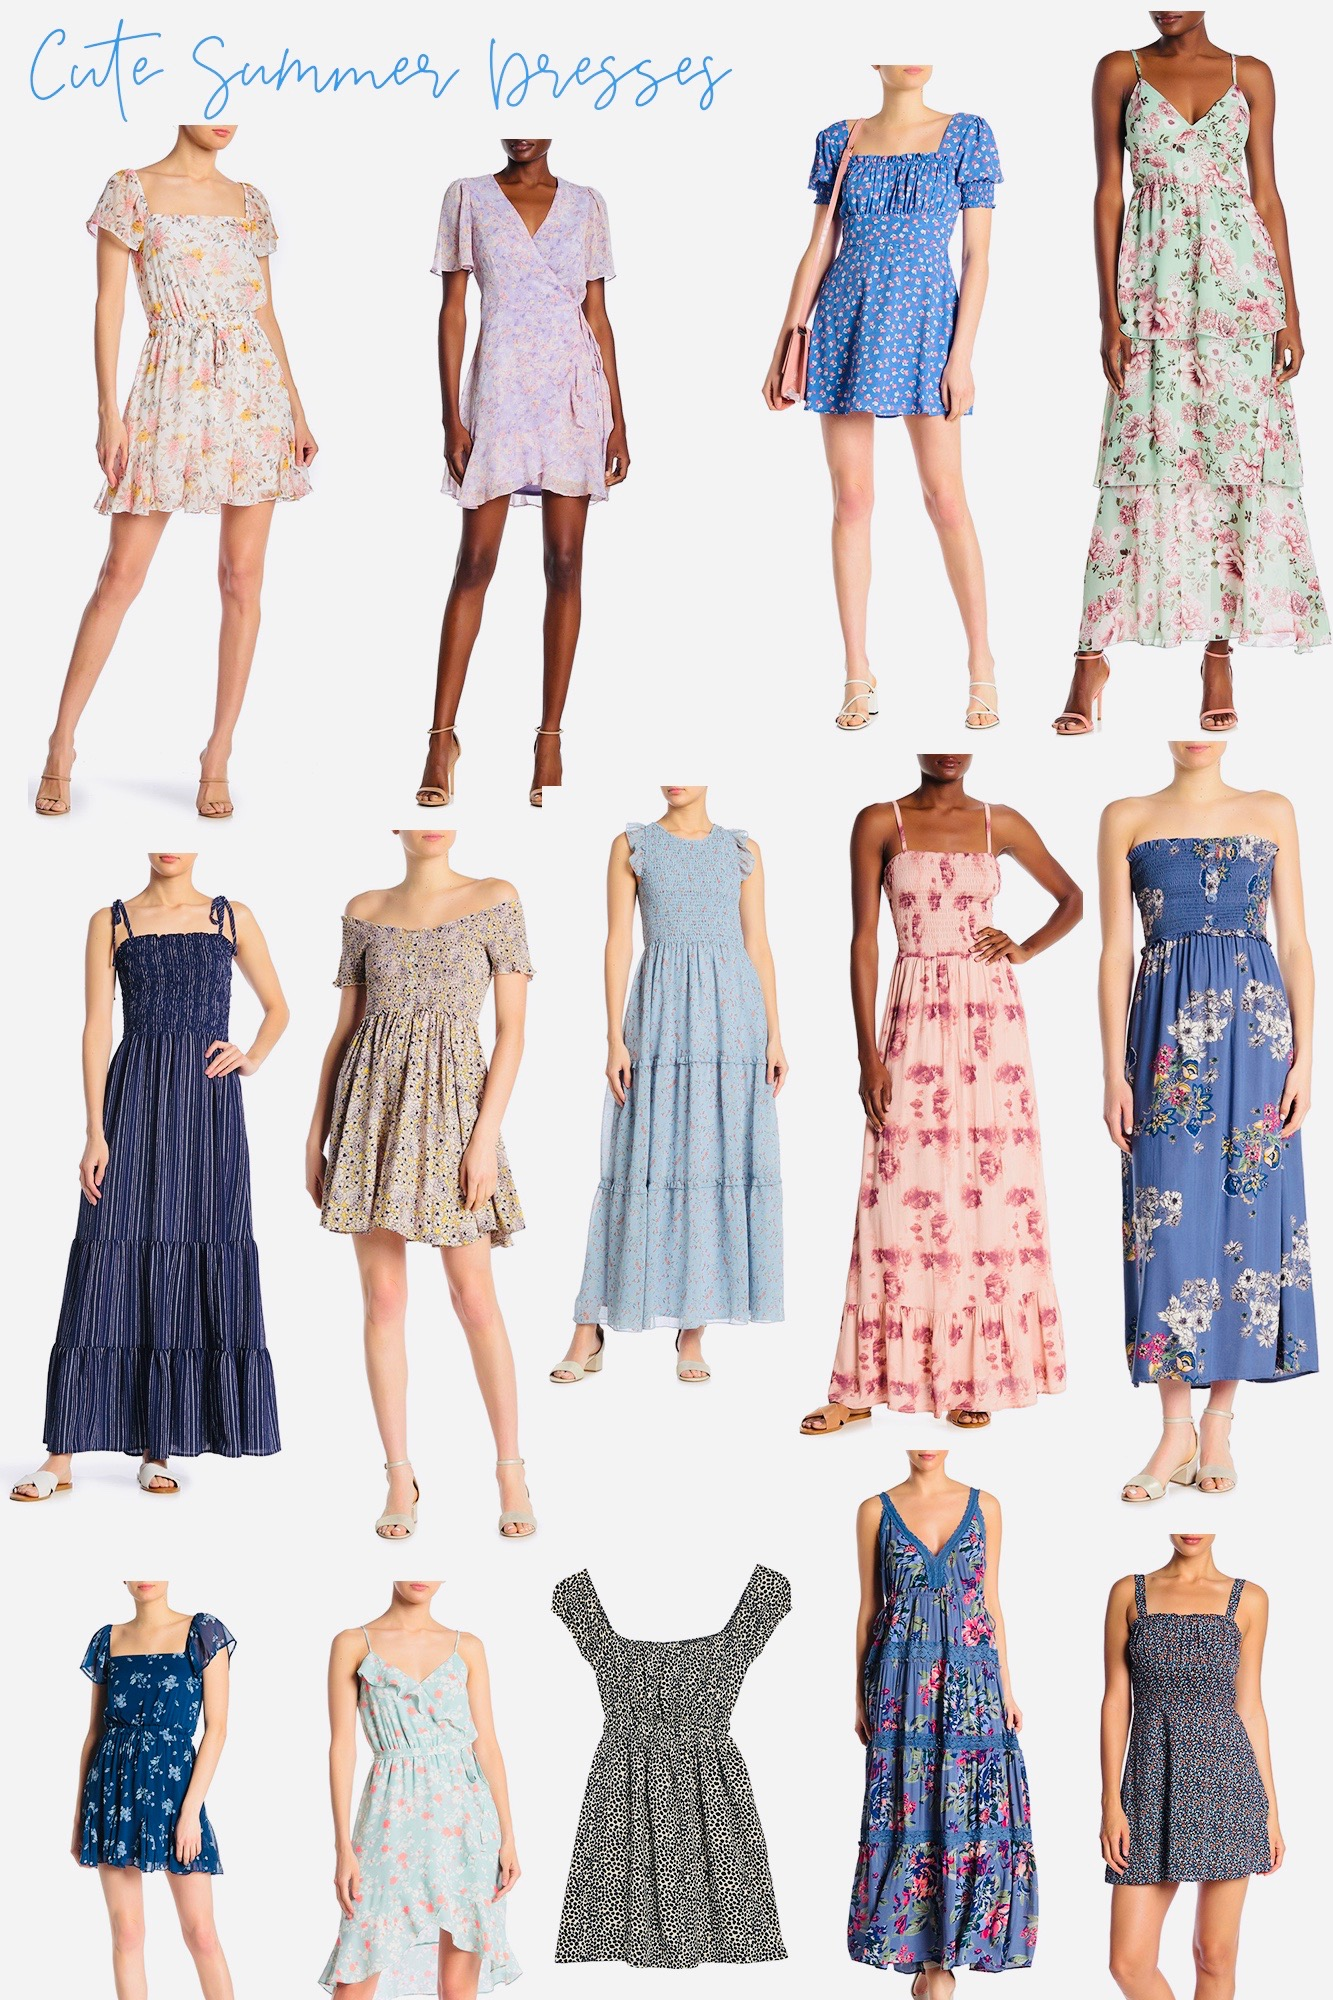 Affordable Summer Dresses I Love - All under $40-50! So many great styles that are chic, classy and fun for low price options.